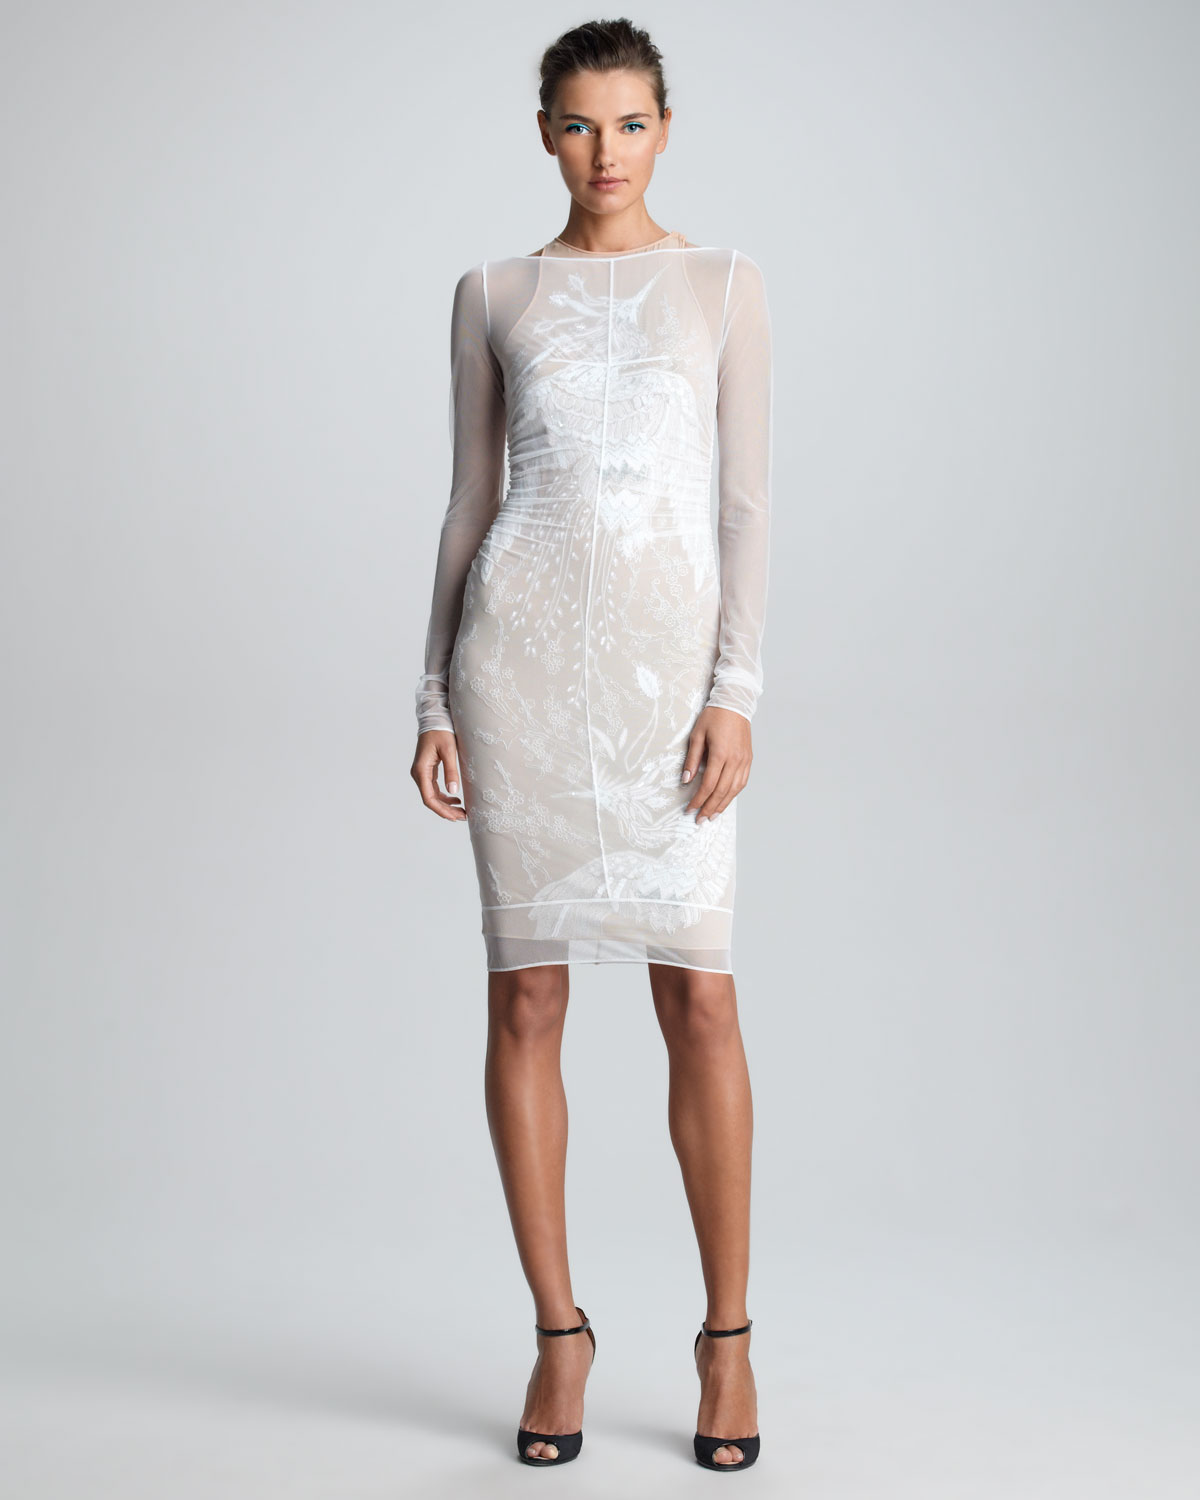 Emilio pucci Sheer Embroidered Dress in White | Lyst